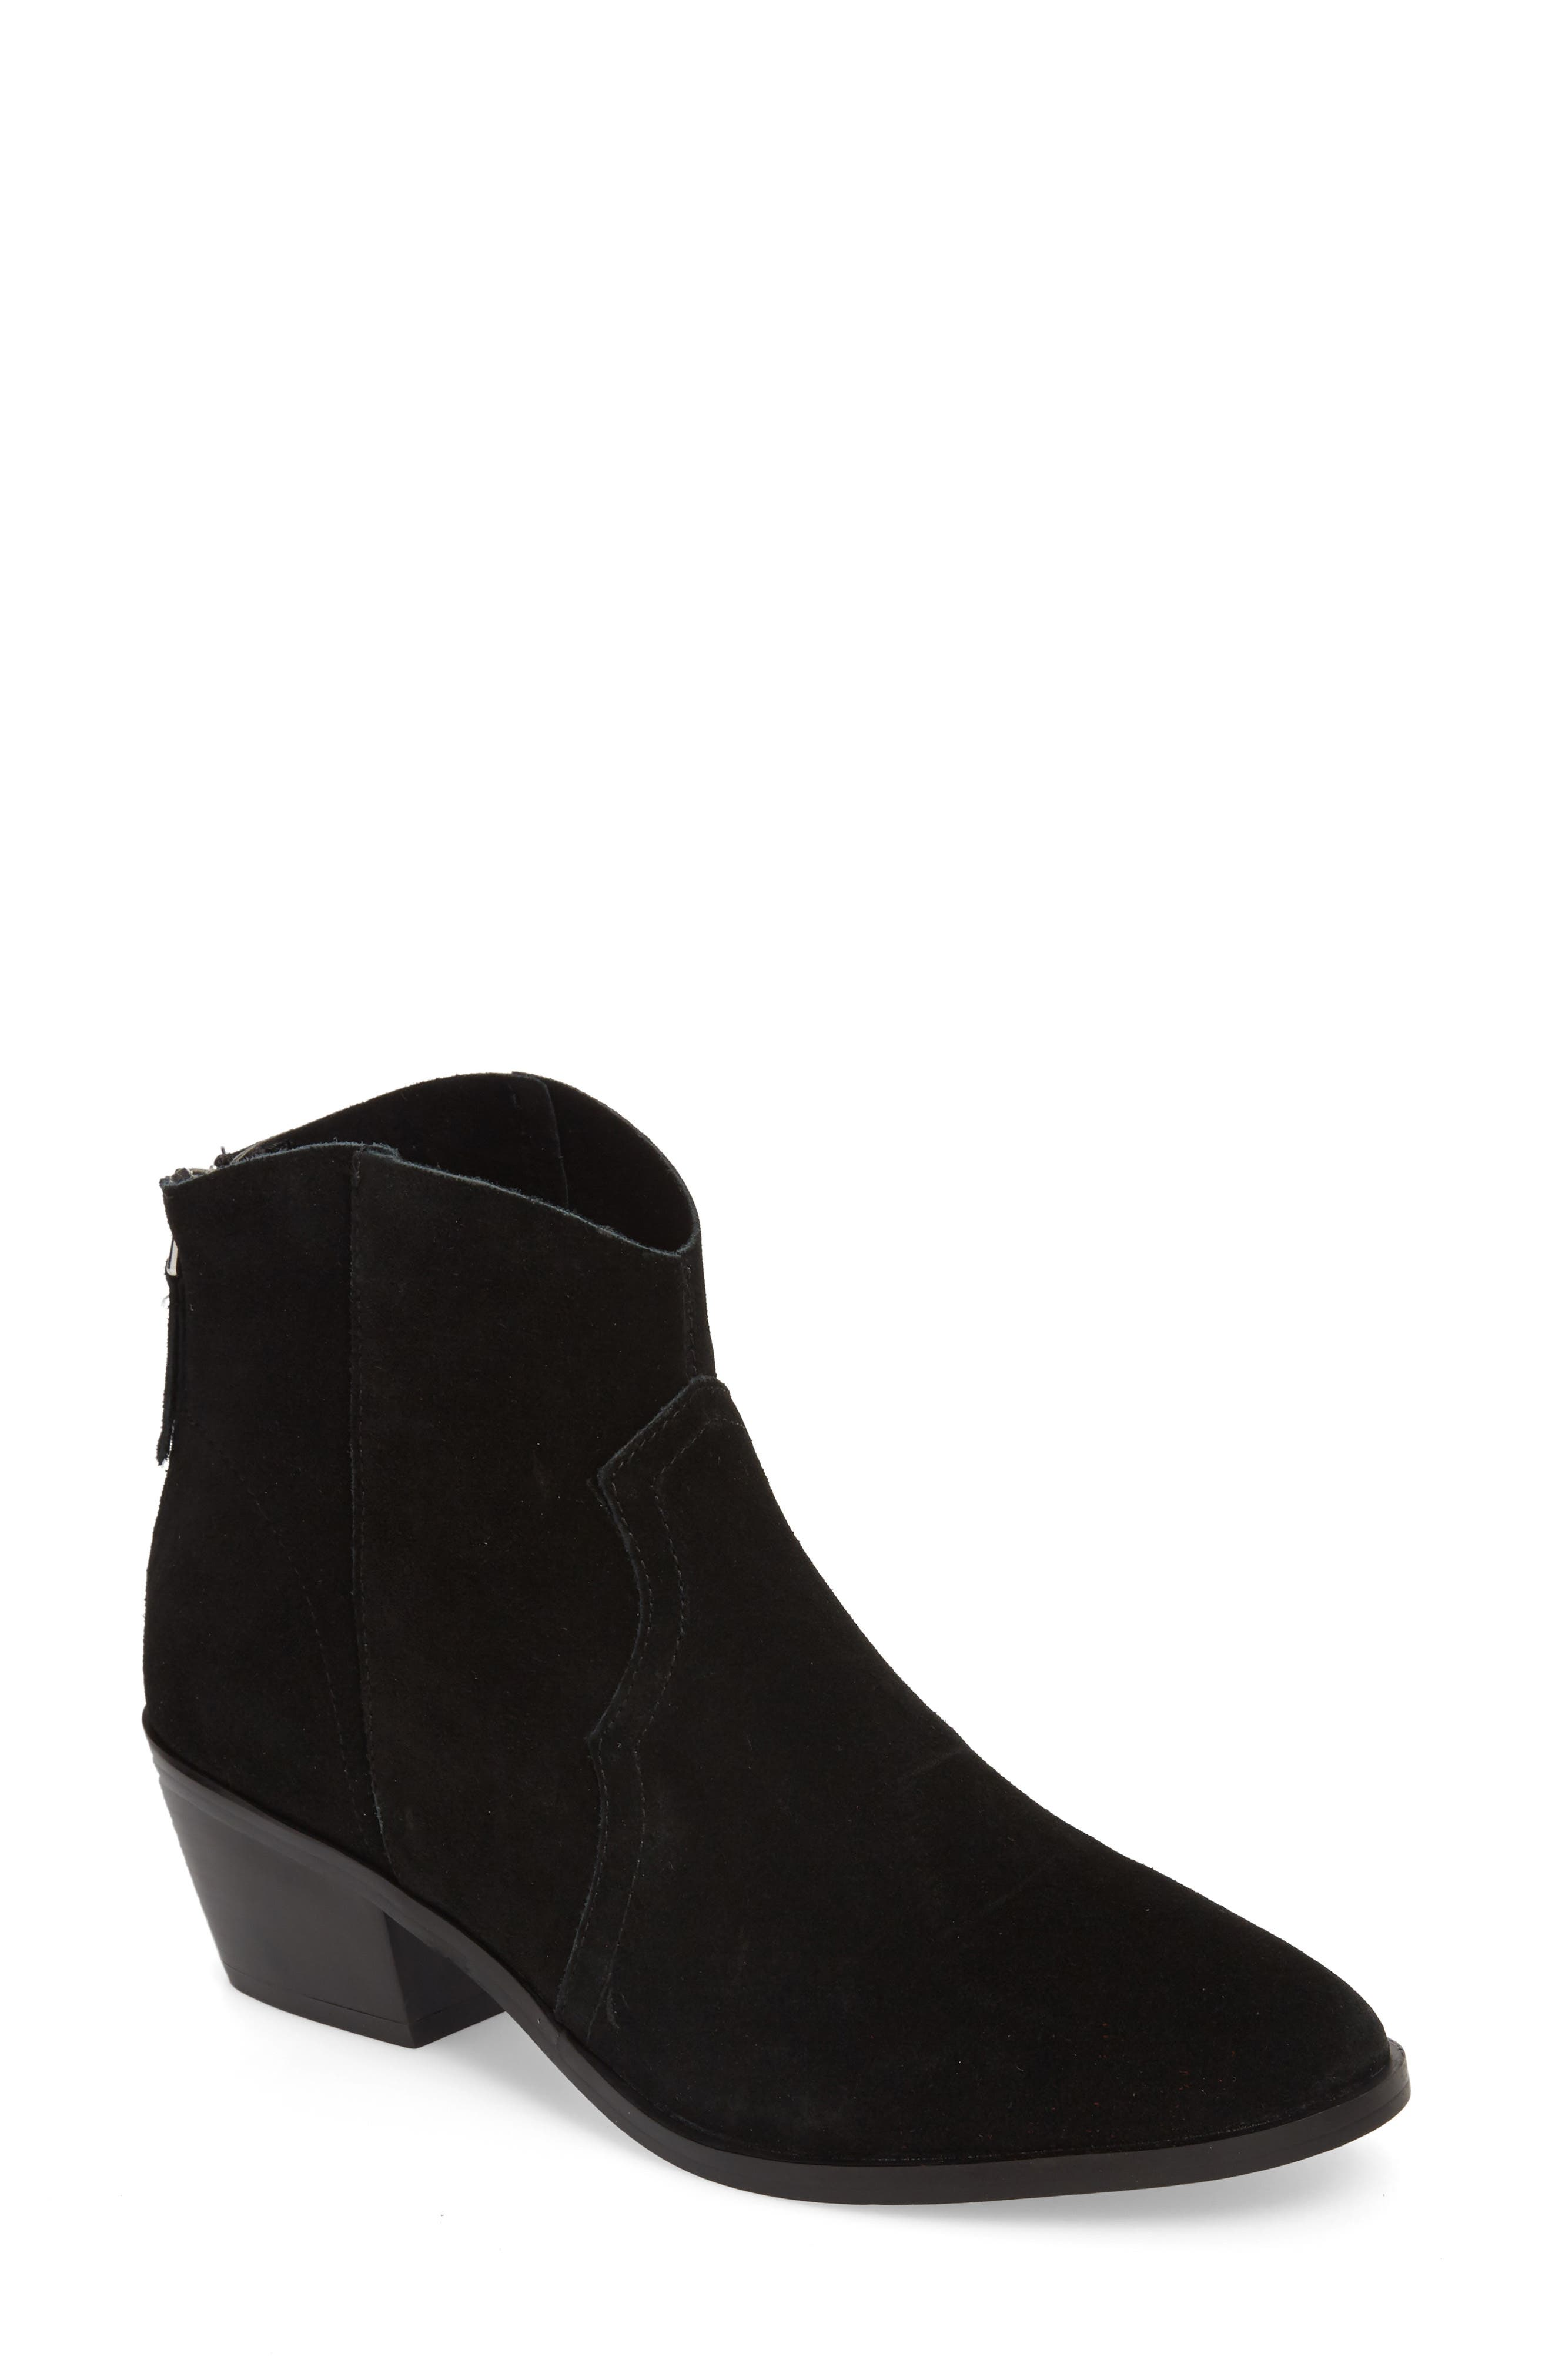 Betty Western Bootie,                             Main thumbnail 1, color,                             001